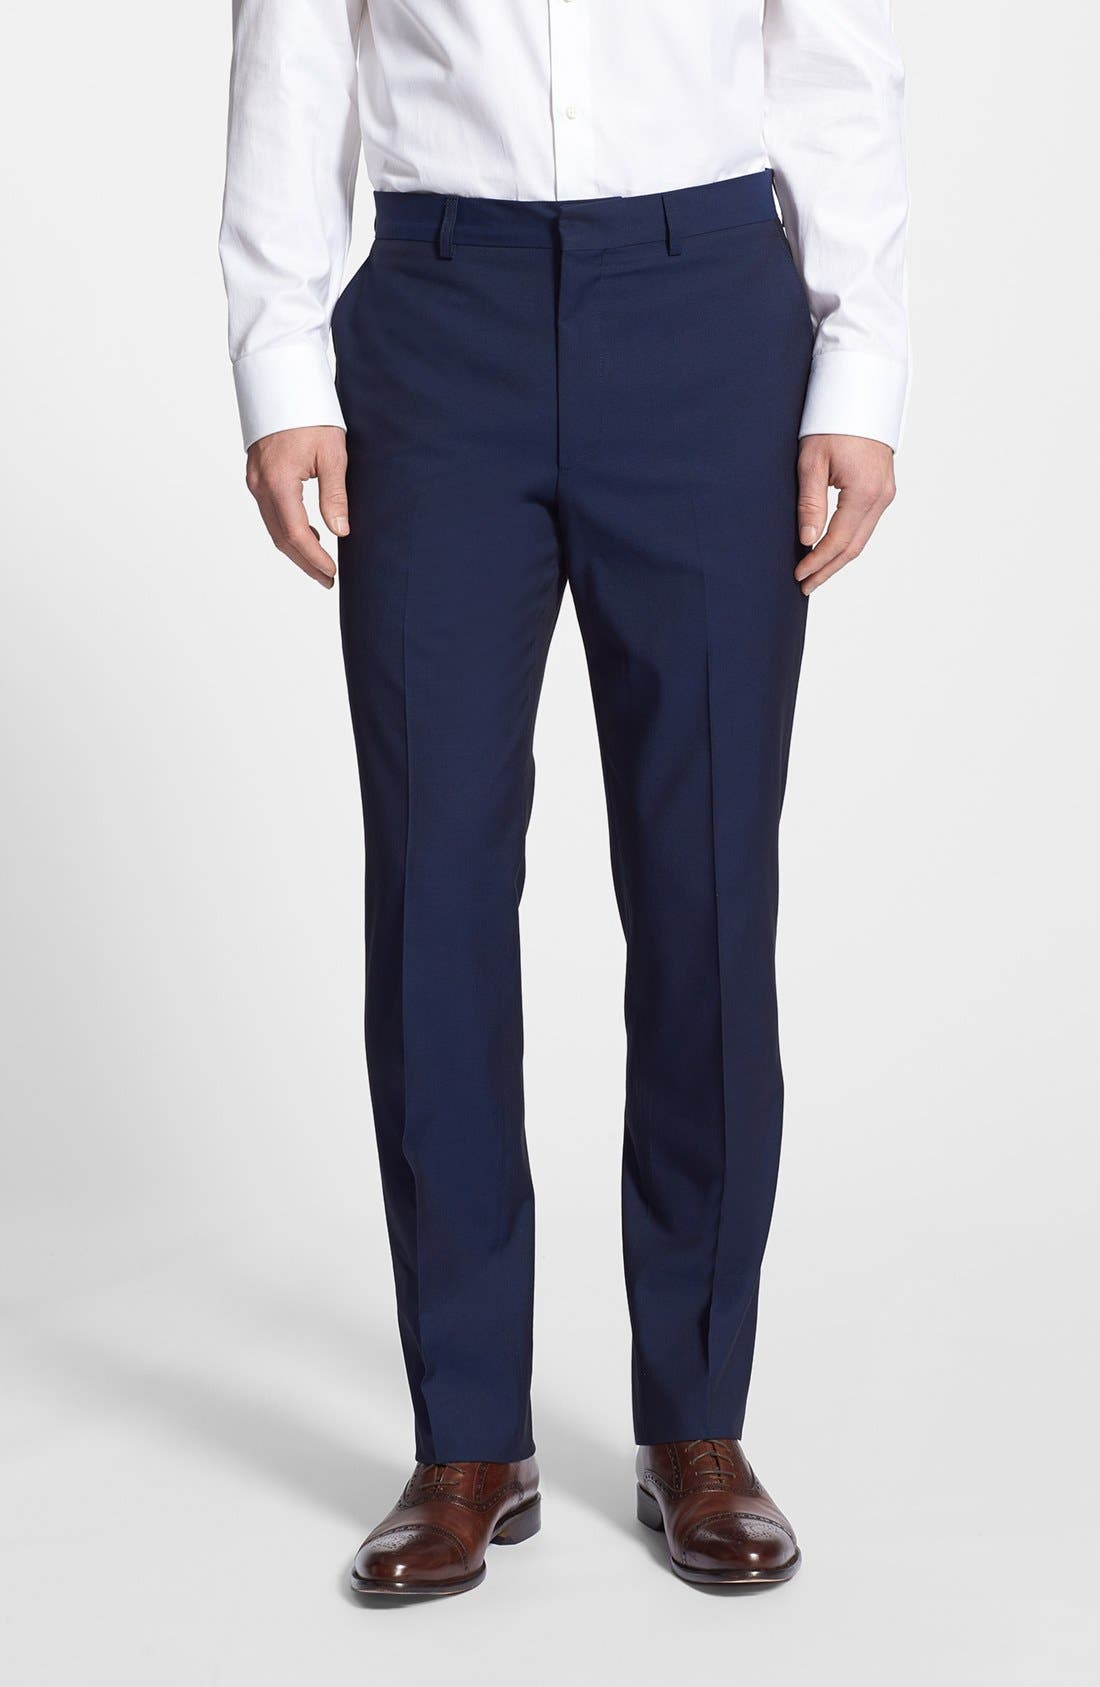 Alternate Image 1 Selected - Linea Natural Trim Fit Flat Front Cotton Trousers (Nordstrom Exclusive)